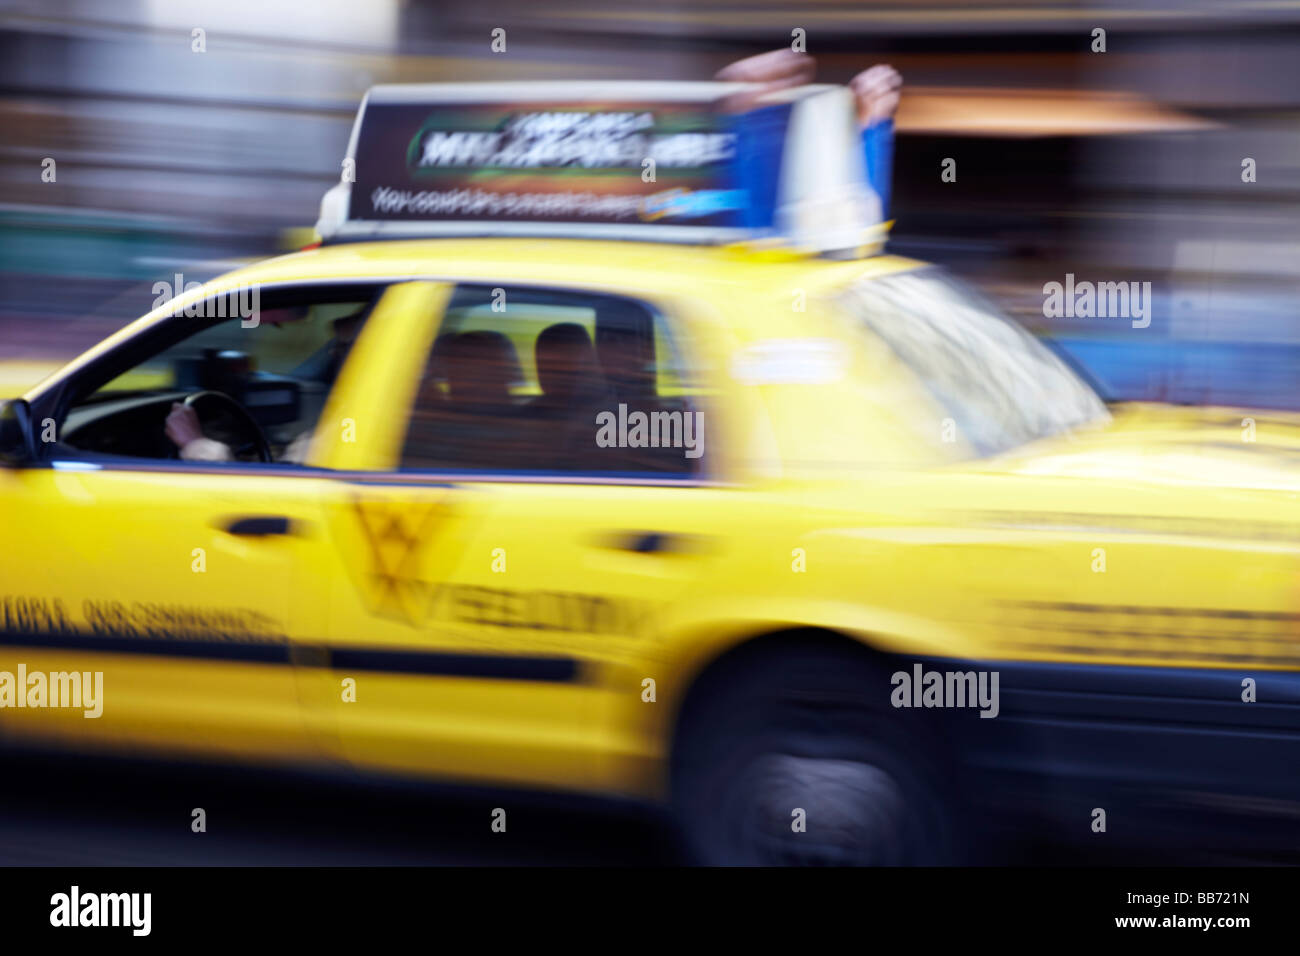 taxi detail, San Francisco - Stock Image